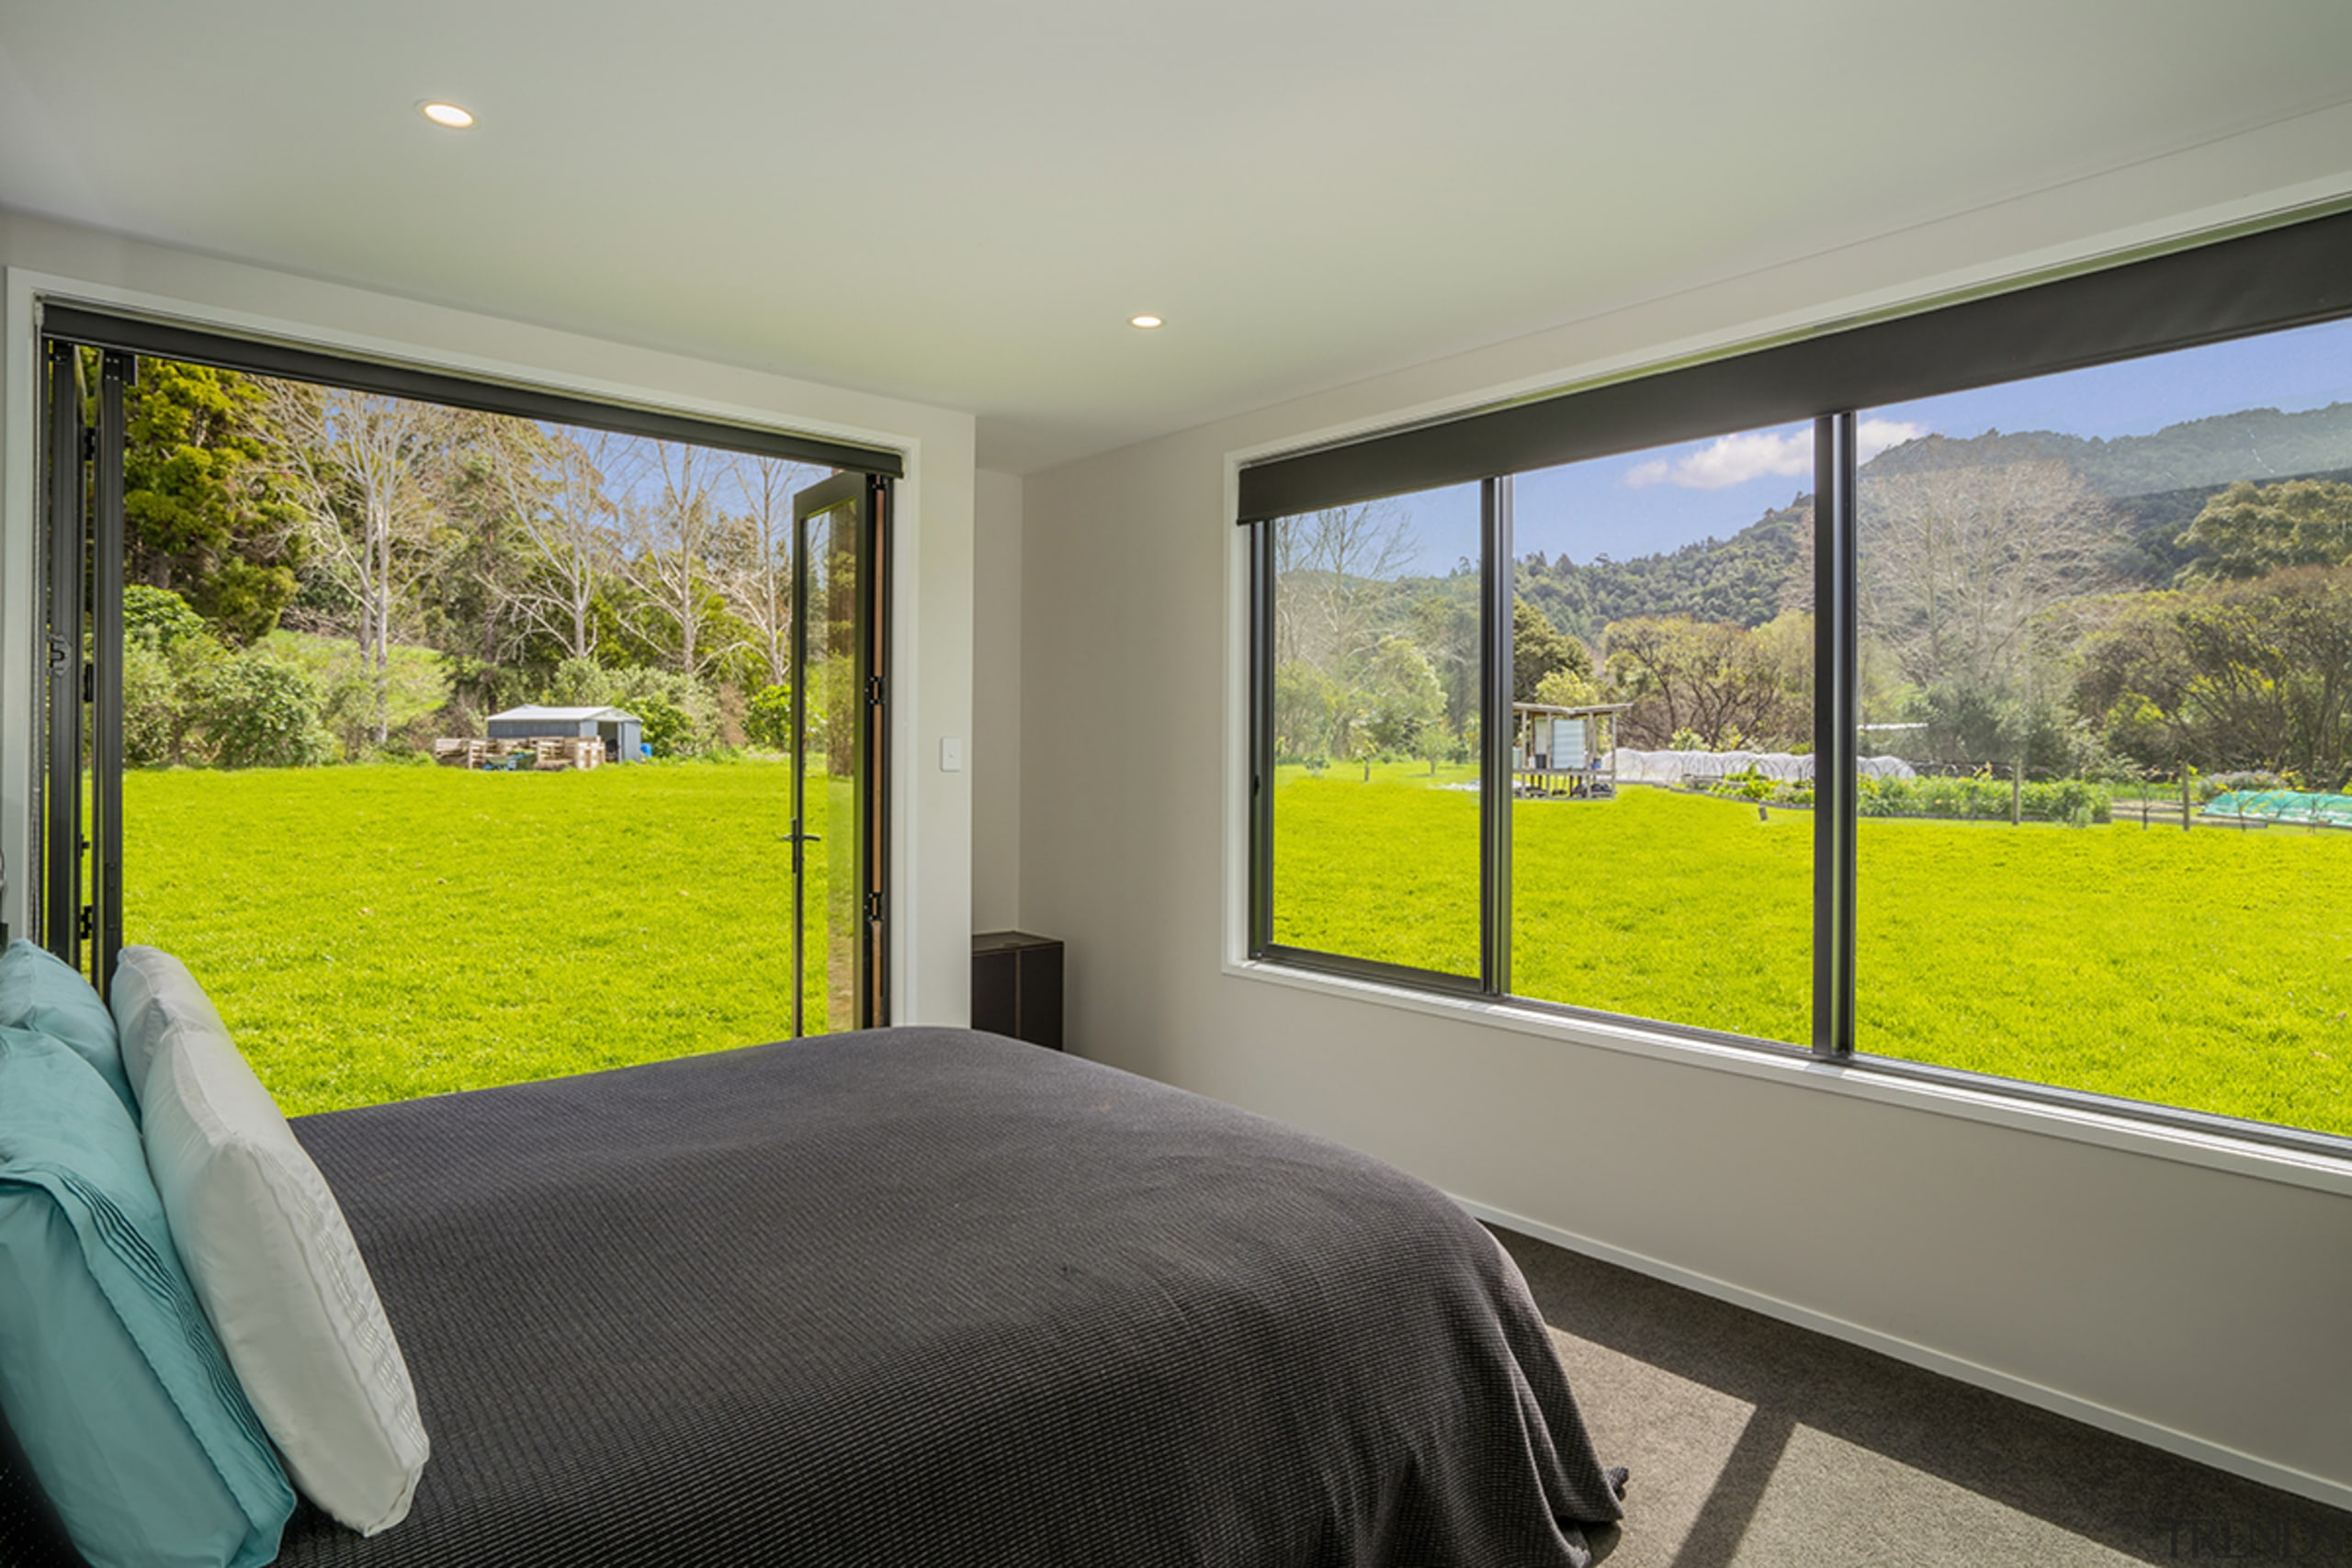 In this Landmark Homes residence even the bedrooms gray